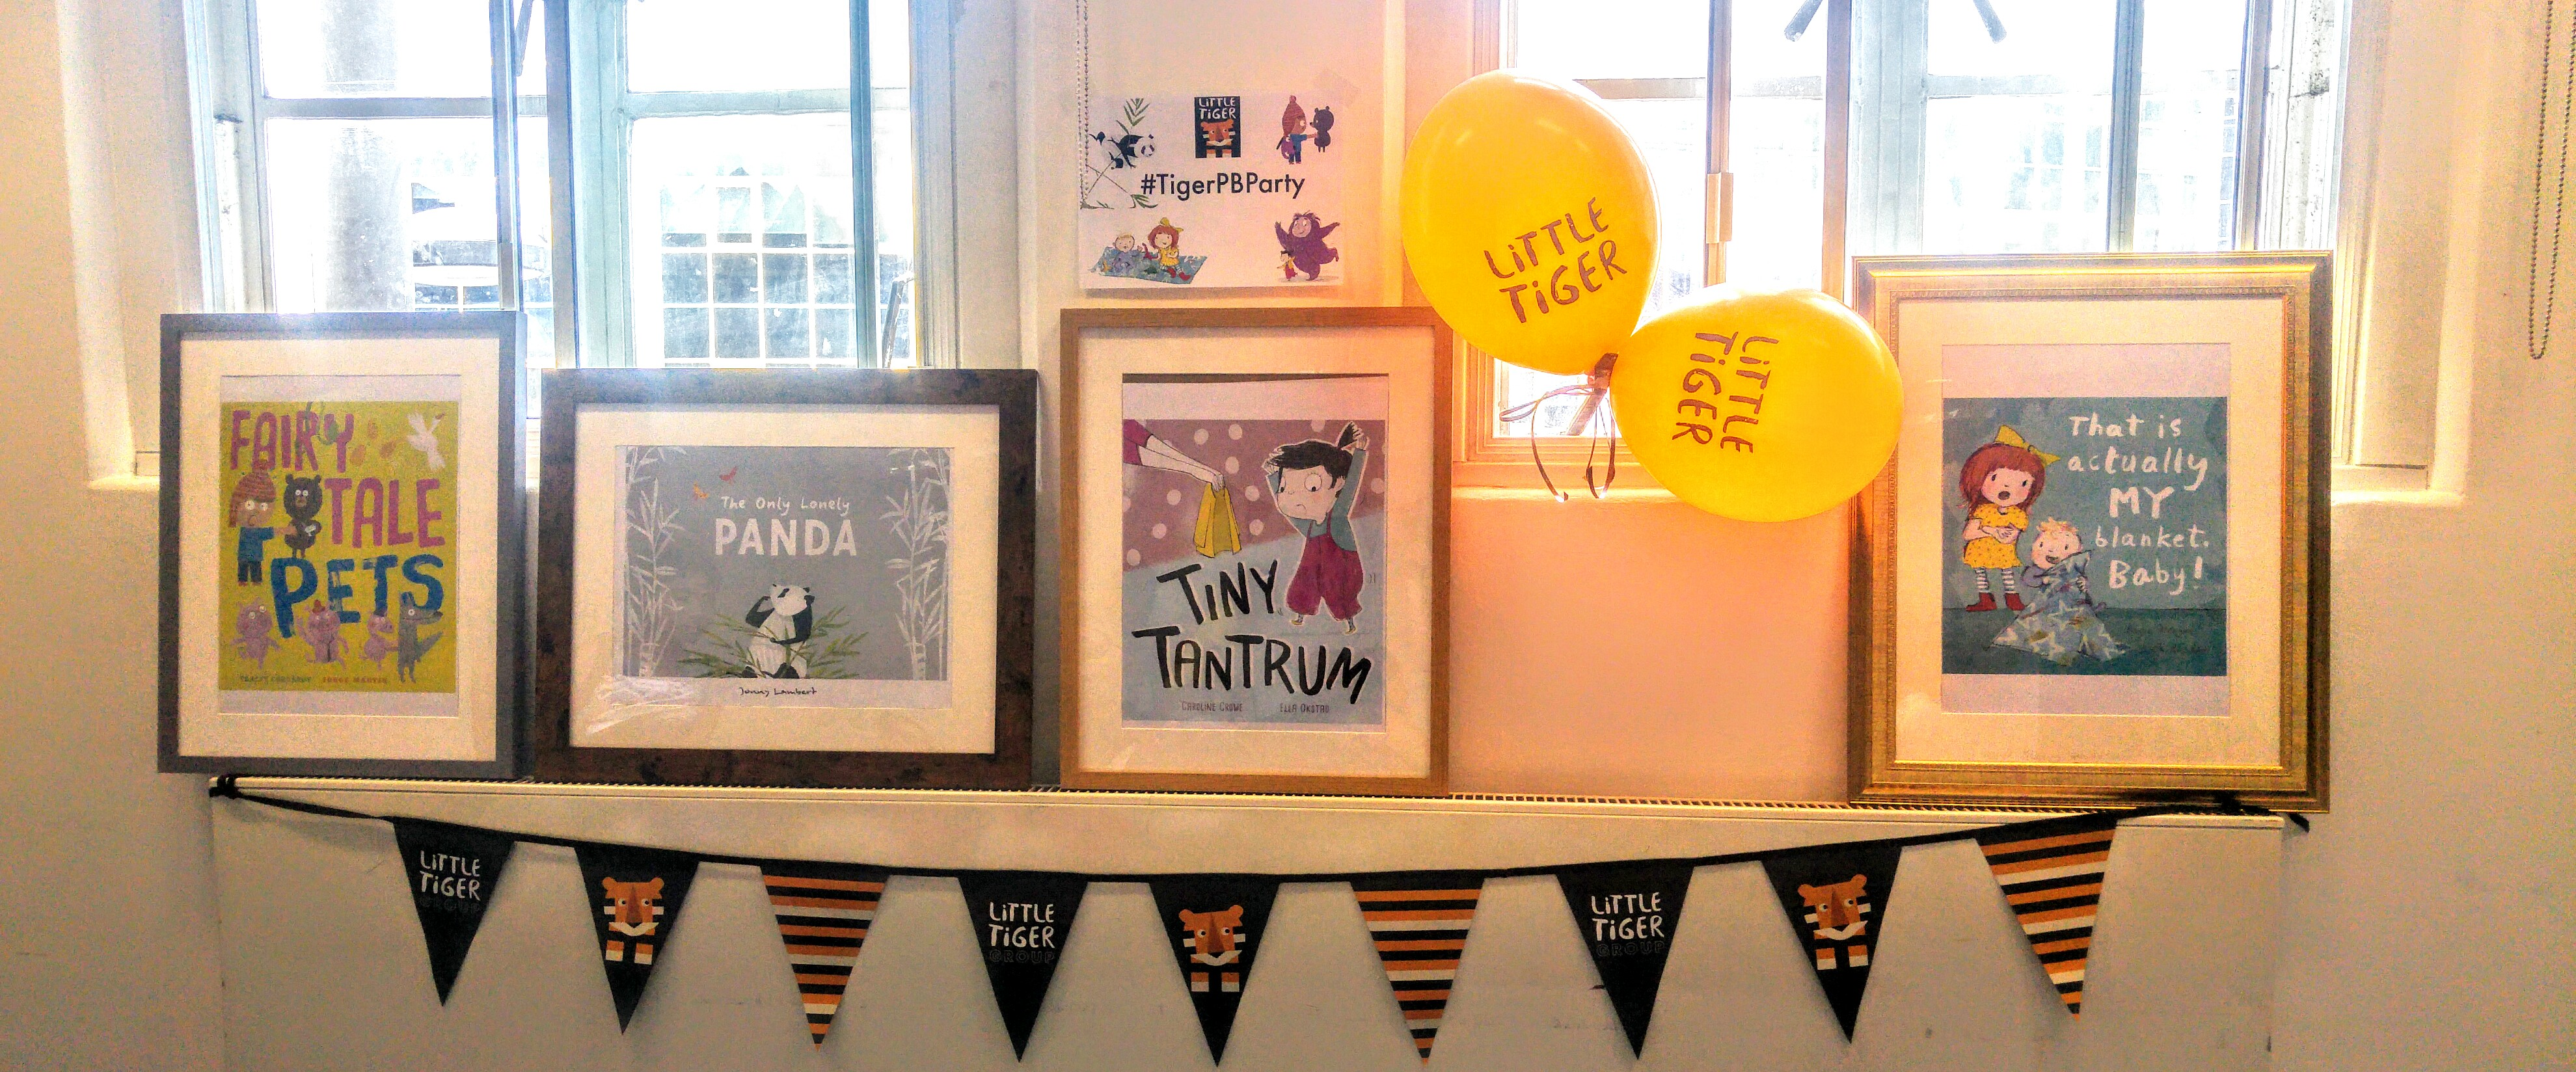 Little Tiger Press Books 30th Birthday